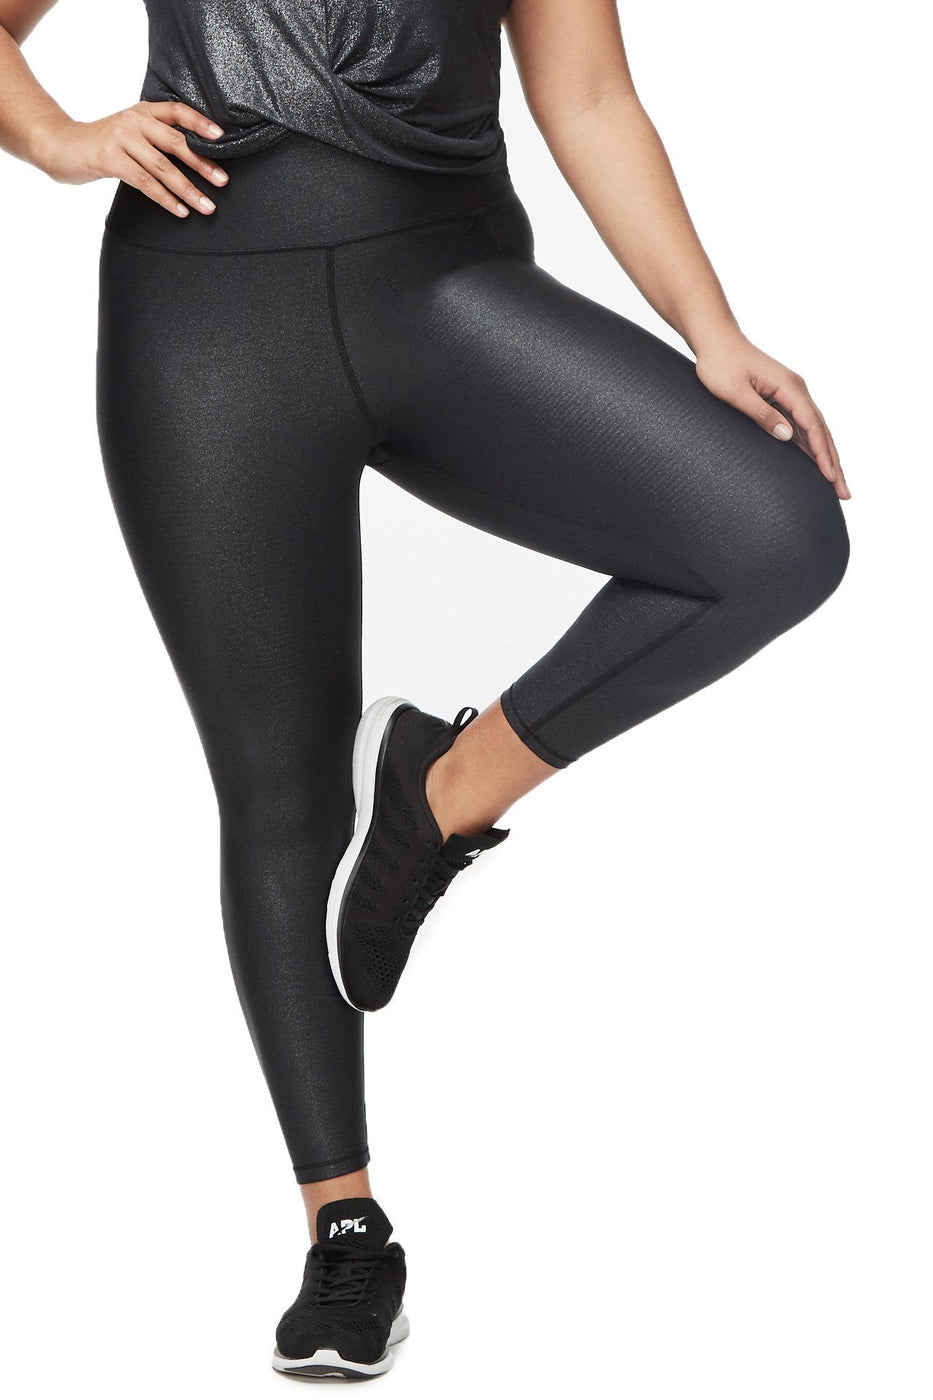 THE CORE STRENGTH 7/8 LEGGING | MOONLIGHT001